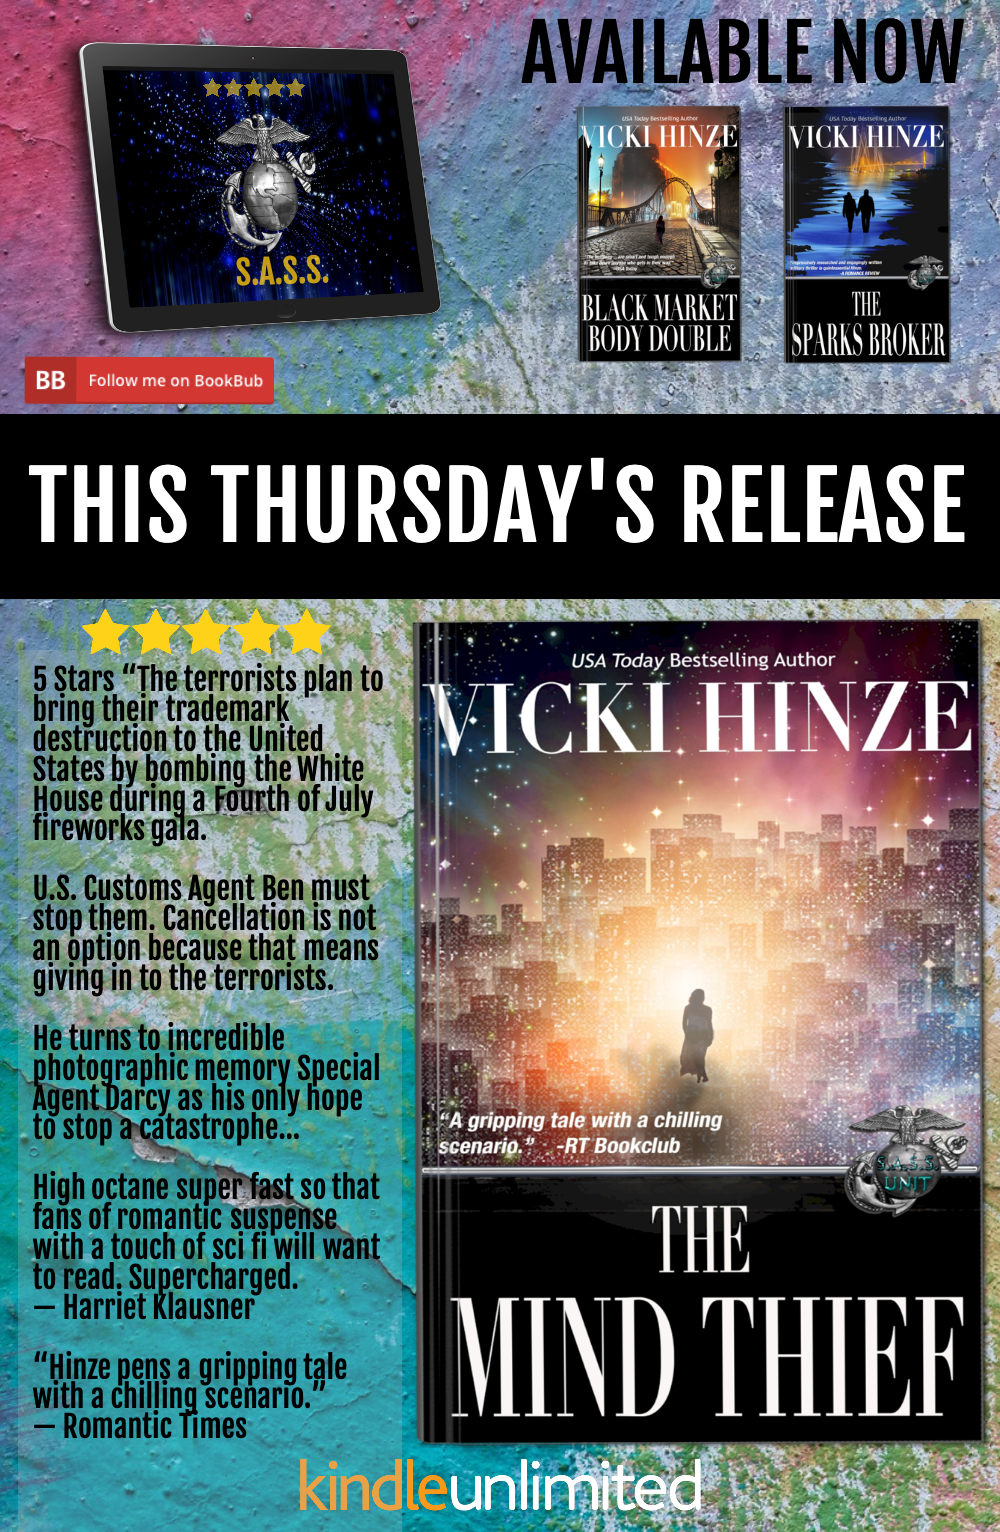 The Mind Thief, Vicki Hinze, S.A.S.S. series